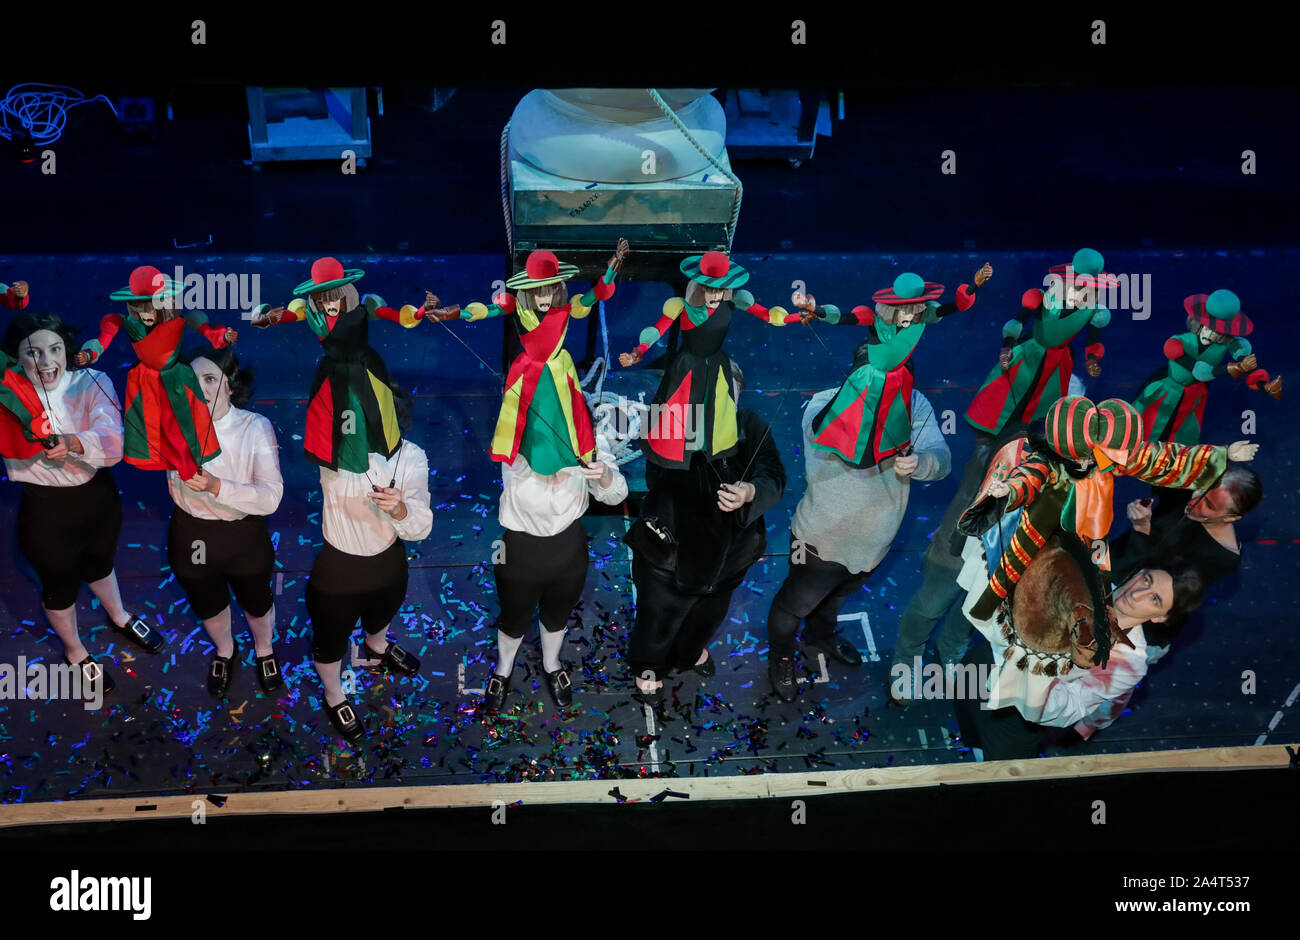 Moscow, Russia. 08th Oct, 2019. MOSCOW, RUSSIA - OCTOBER 5, 2019: Actors rehearse a scene from the production of Gulliver's Travels at Sergei Obraztsov Puppet Theatre. Vyacheslav Prokofyev/TASS Credit: ITAR-TASS News Agency/Alamy Live News Stock Photo